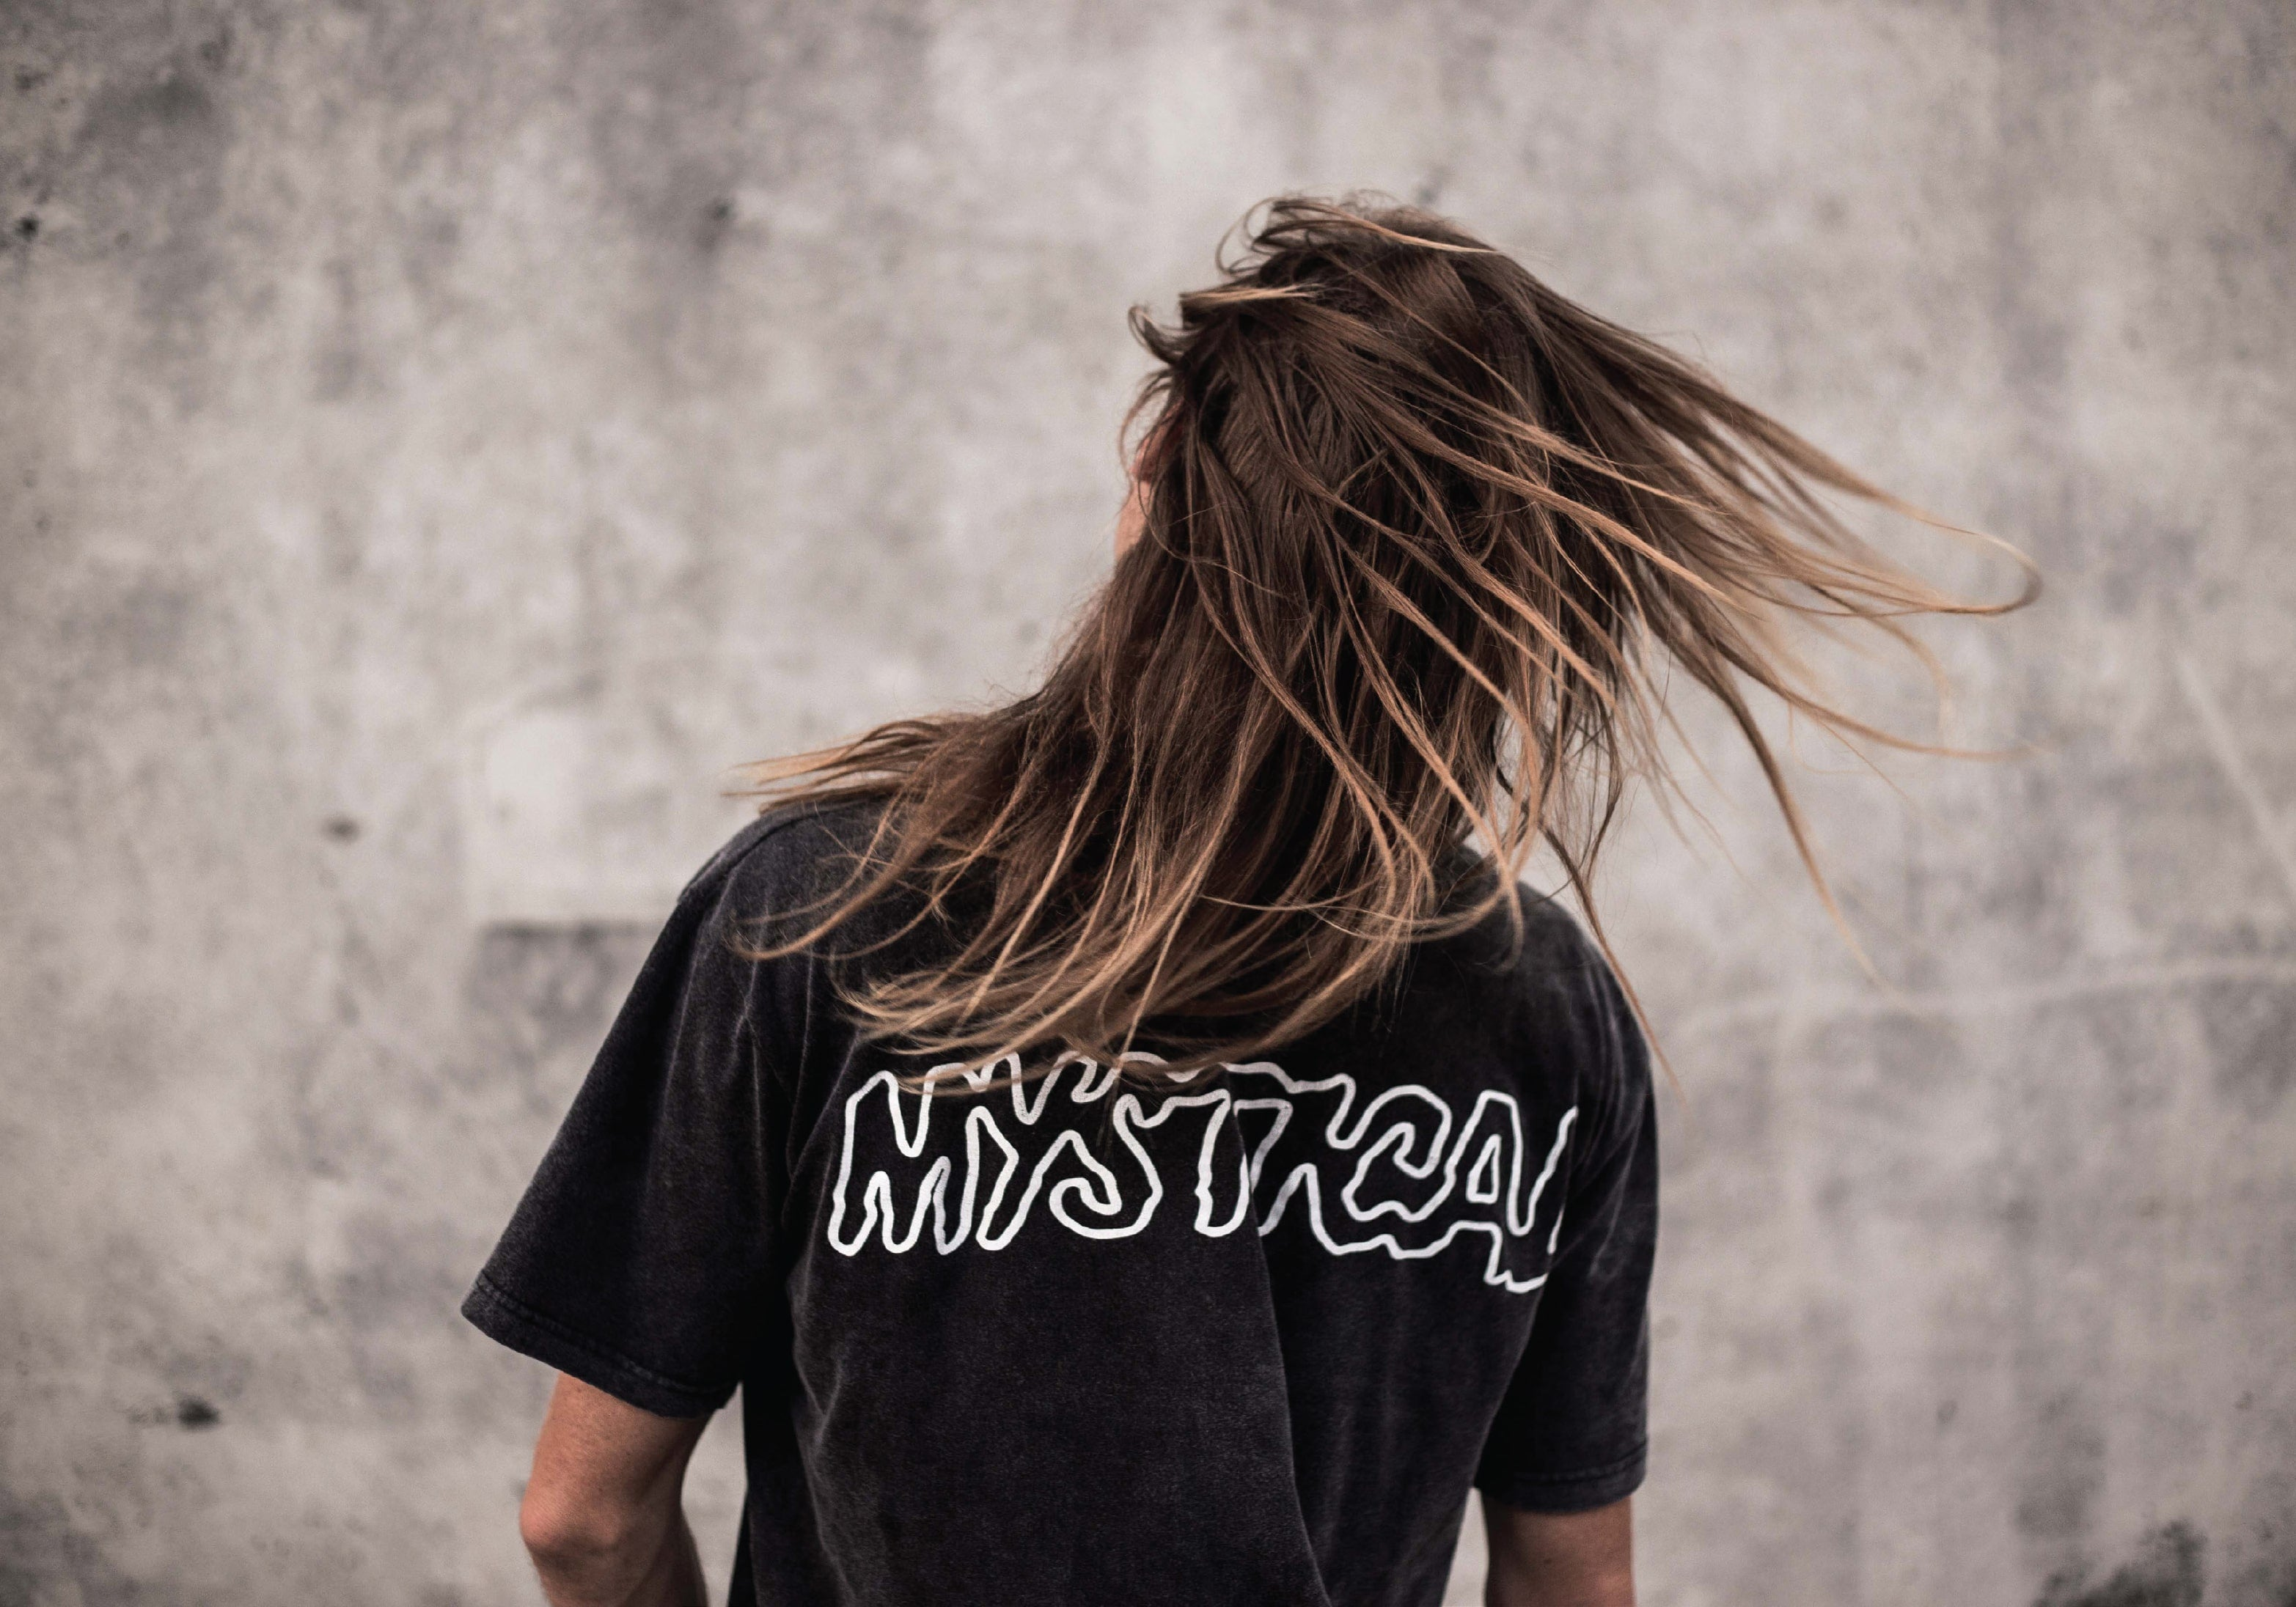 WDA, WE DREAM ALONE, CLOTHING, APPAREL, MENS, TEE, ACID WASH, MYSTICAL, HAIR, SWISH